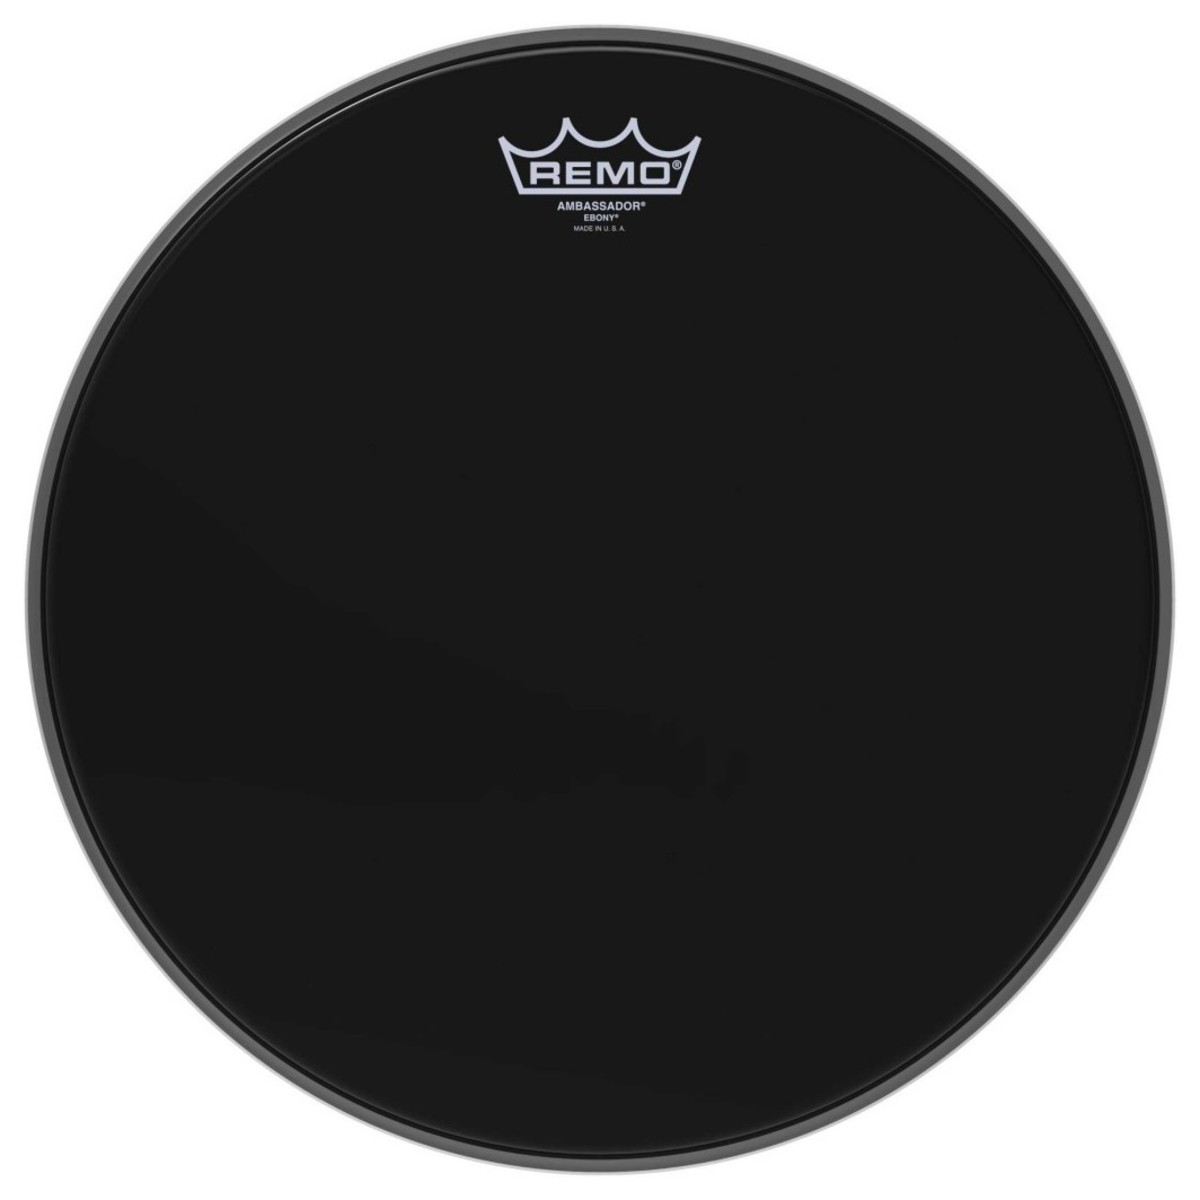 Click to view product details and reviews for Remo Ambassador Ebony 22 Bass Drum Head.